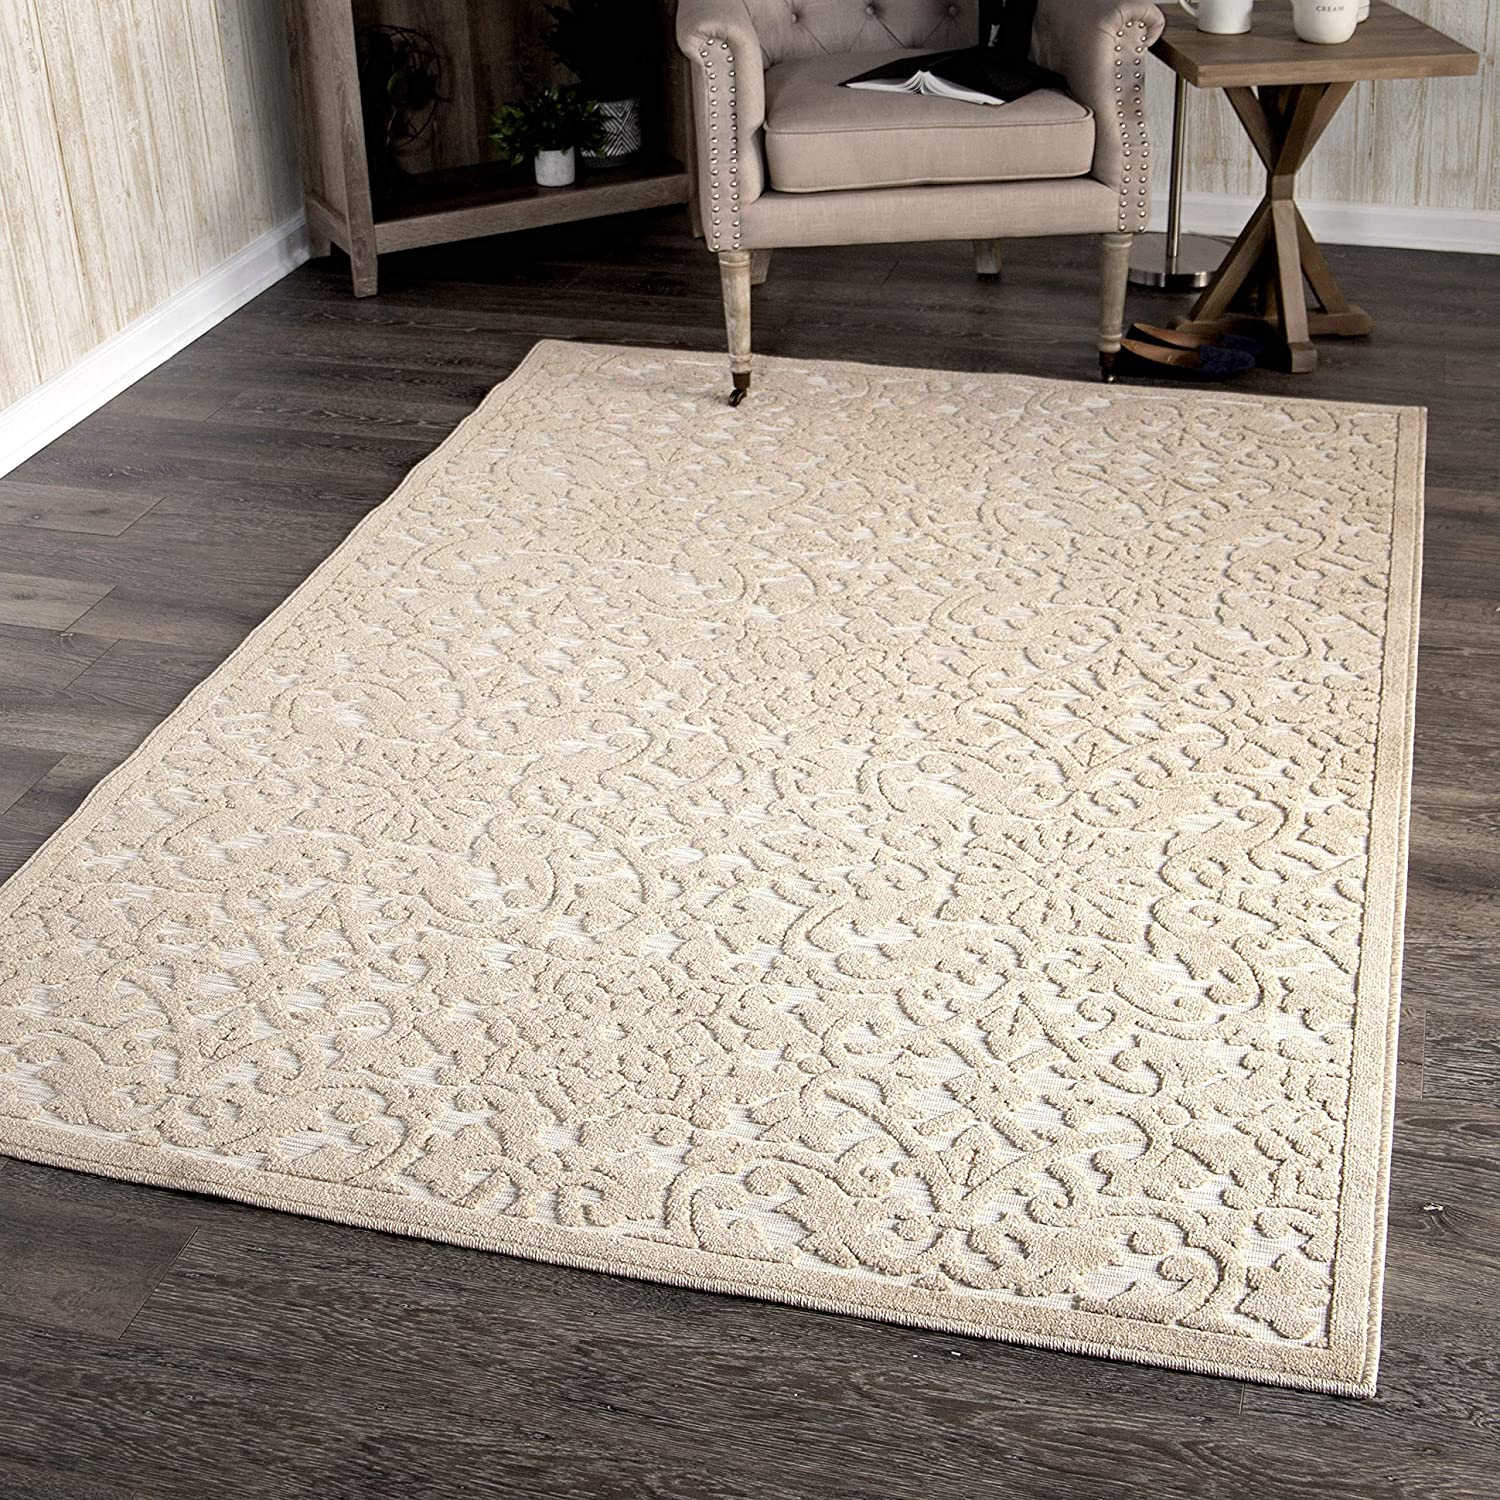 Orian Rugs Boucle Industry No. 1 Collection 394306 Indoor High-Low Bisc Outdoor Ranking TOP20